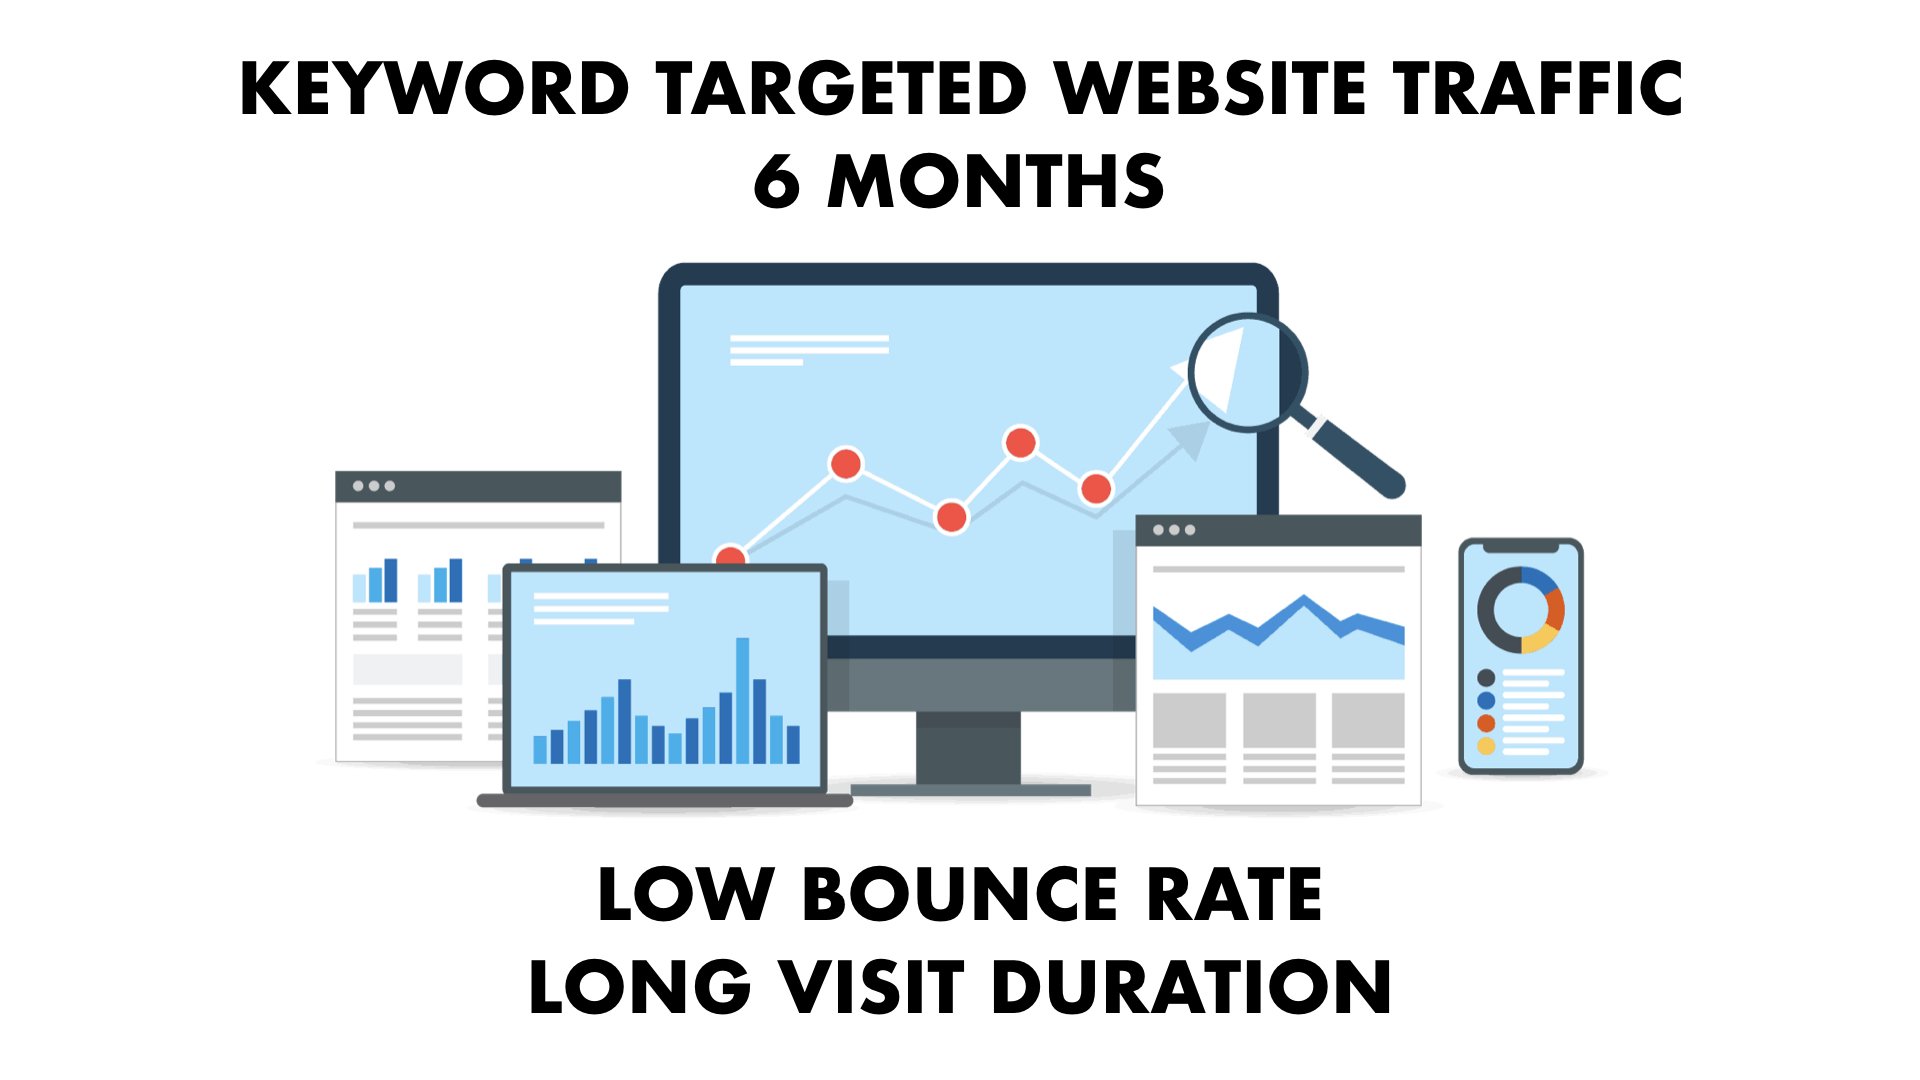 KEYWORD TARGETED Website Traffic with Low Bounce Rate and Long Visit Duration for 6 months